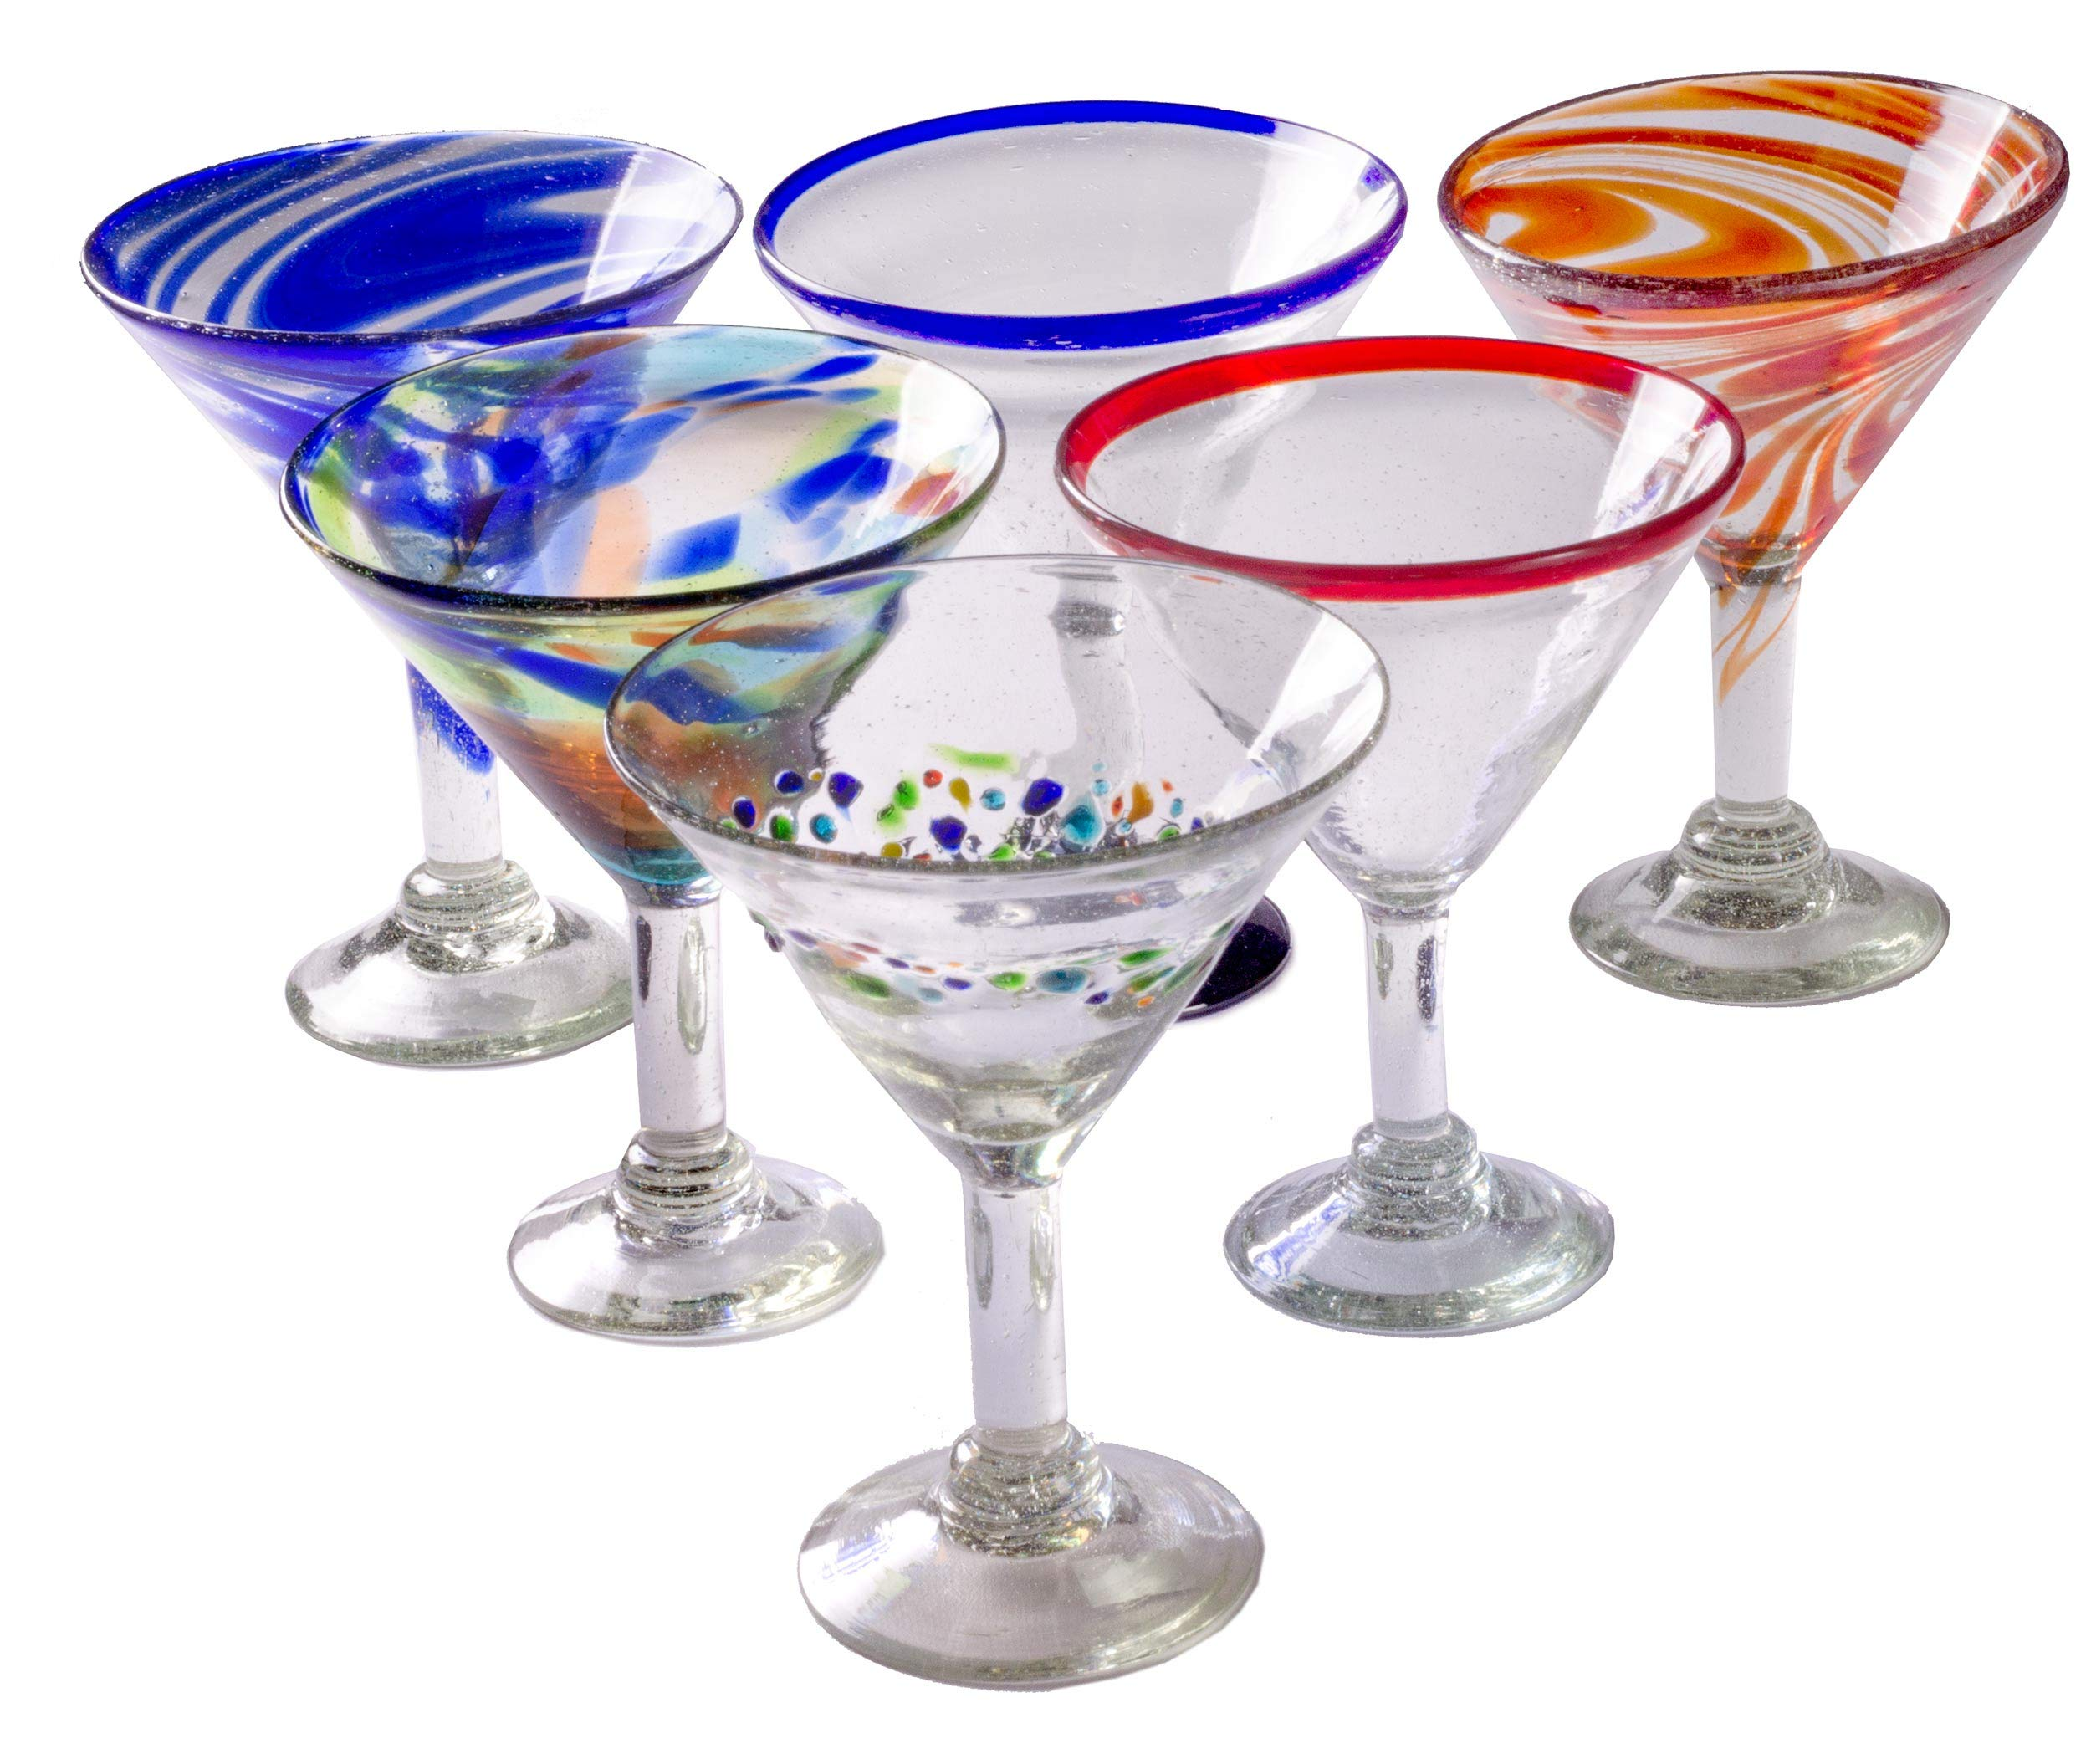 Orion Party Pack 15 oz Classic Margarita - Set of 6